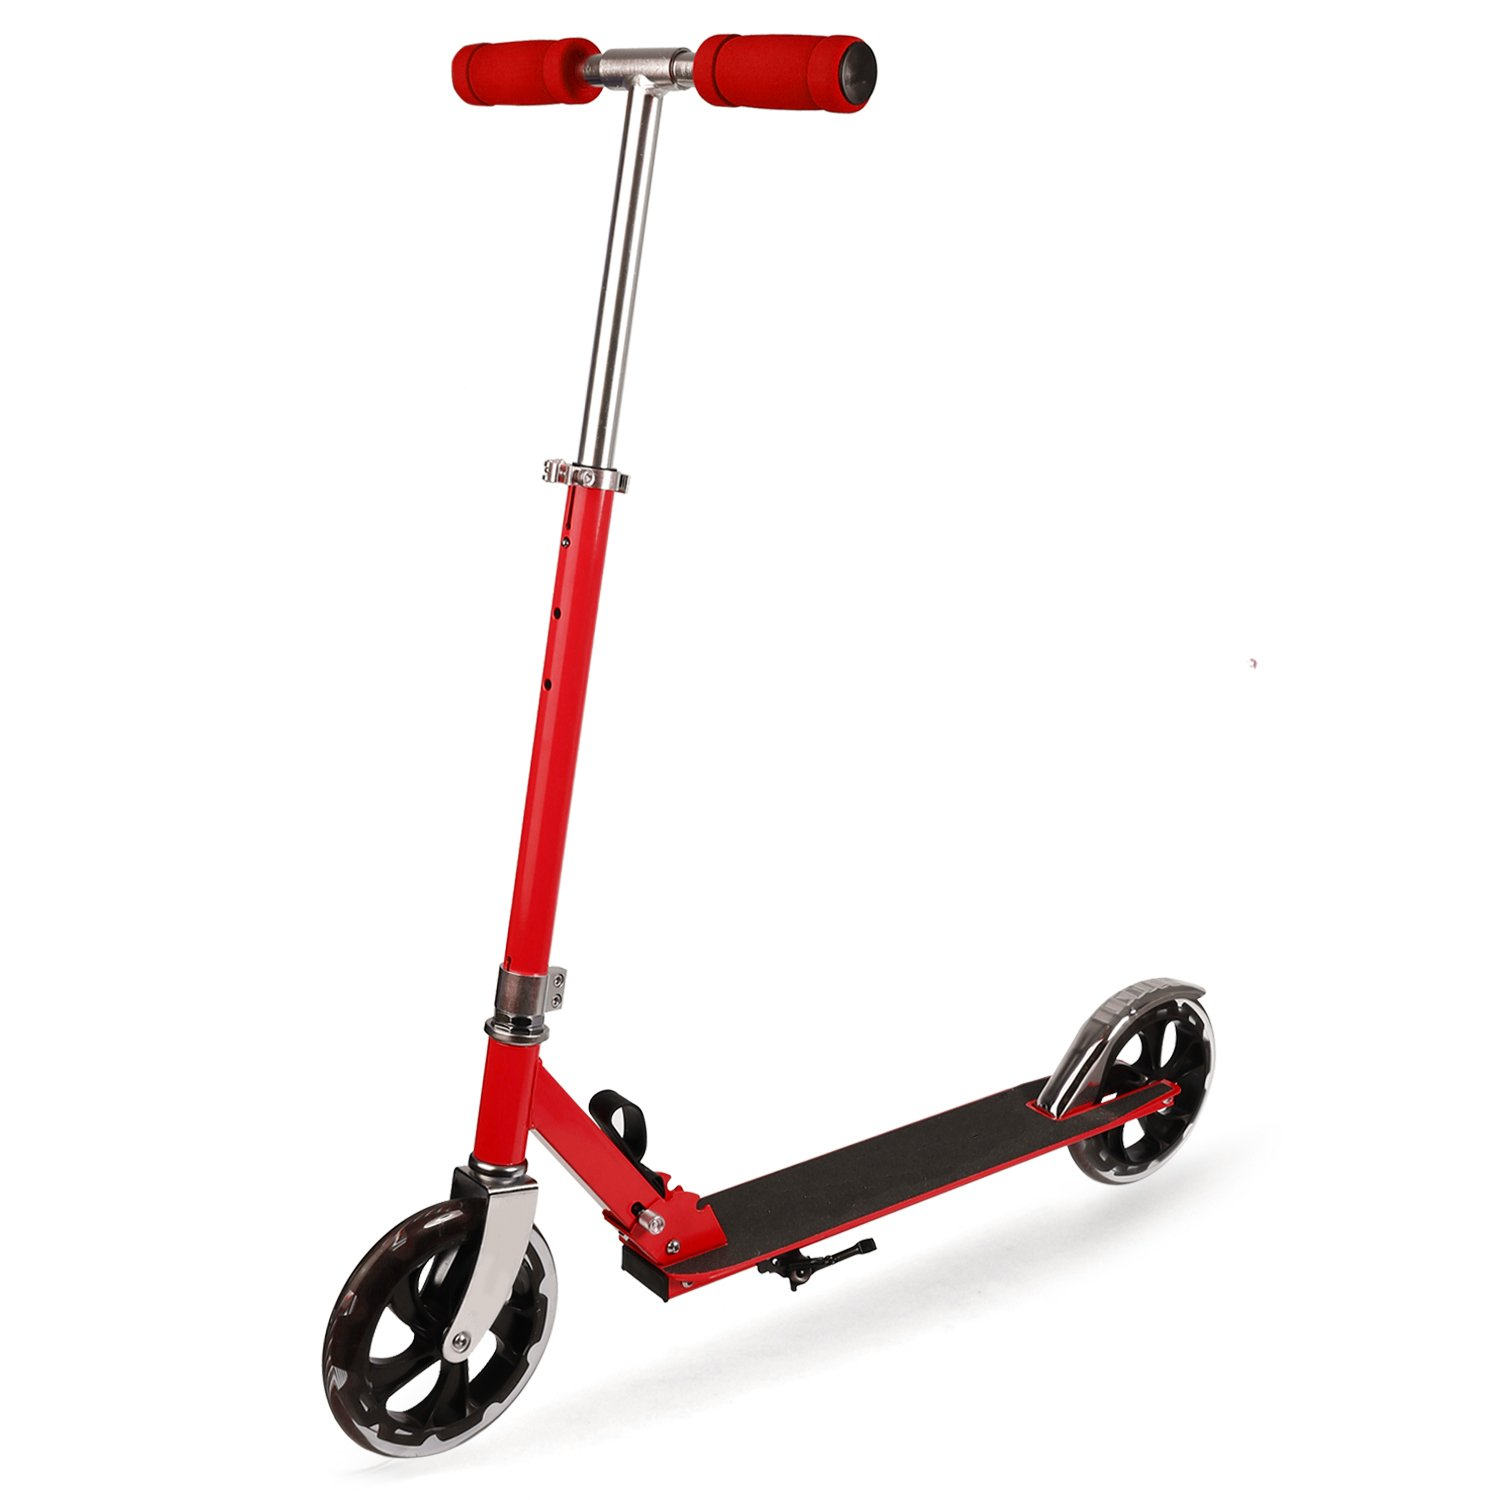 Buysyall ® Patinetes Freestyle Plegable Scooter Pro ...